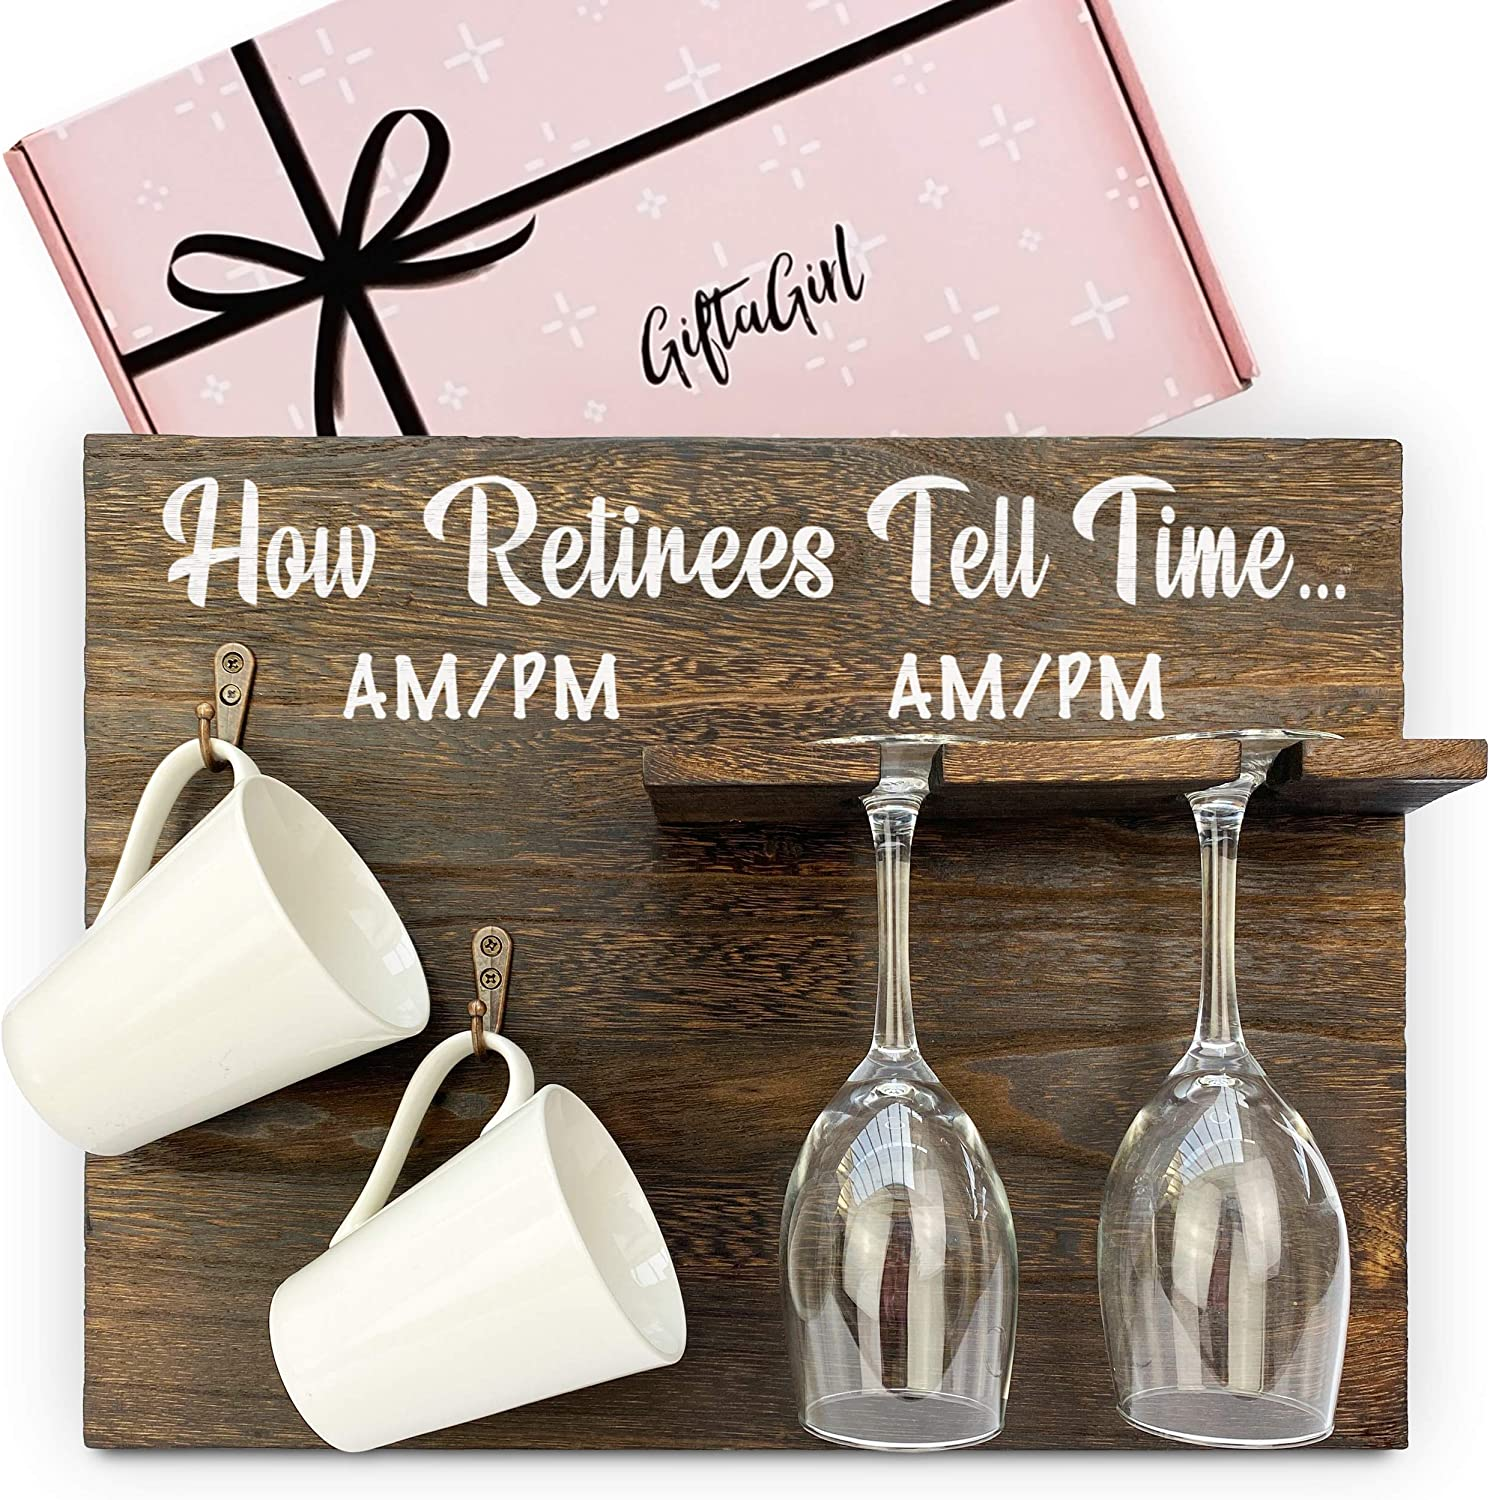 gifts-for-boss-how-retirees-tell-time